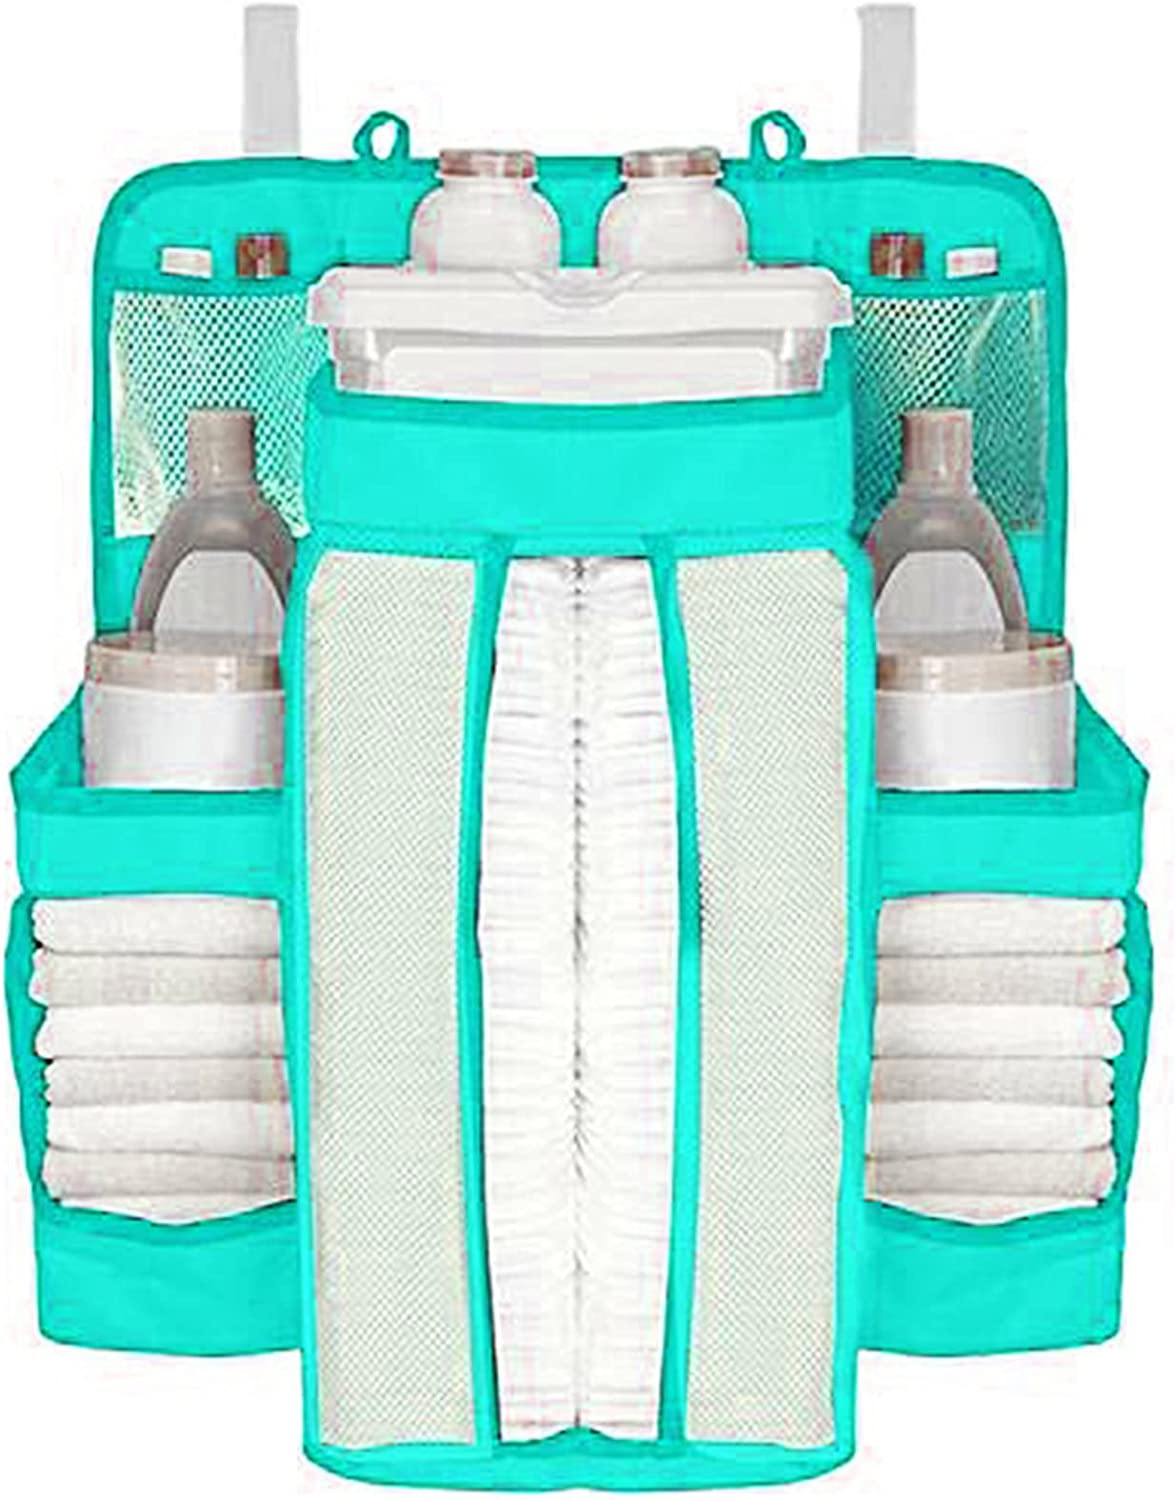 Hanging Diaper Organizer Columbus Mall Max 68% OFF for Changing Table Sta Crib and